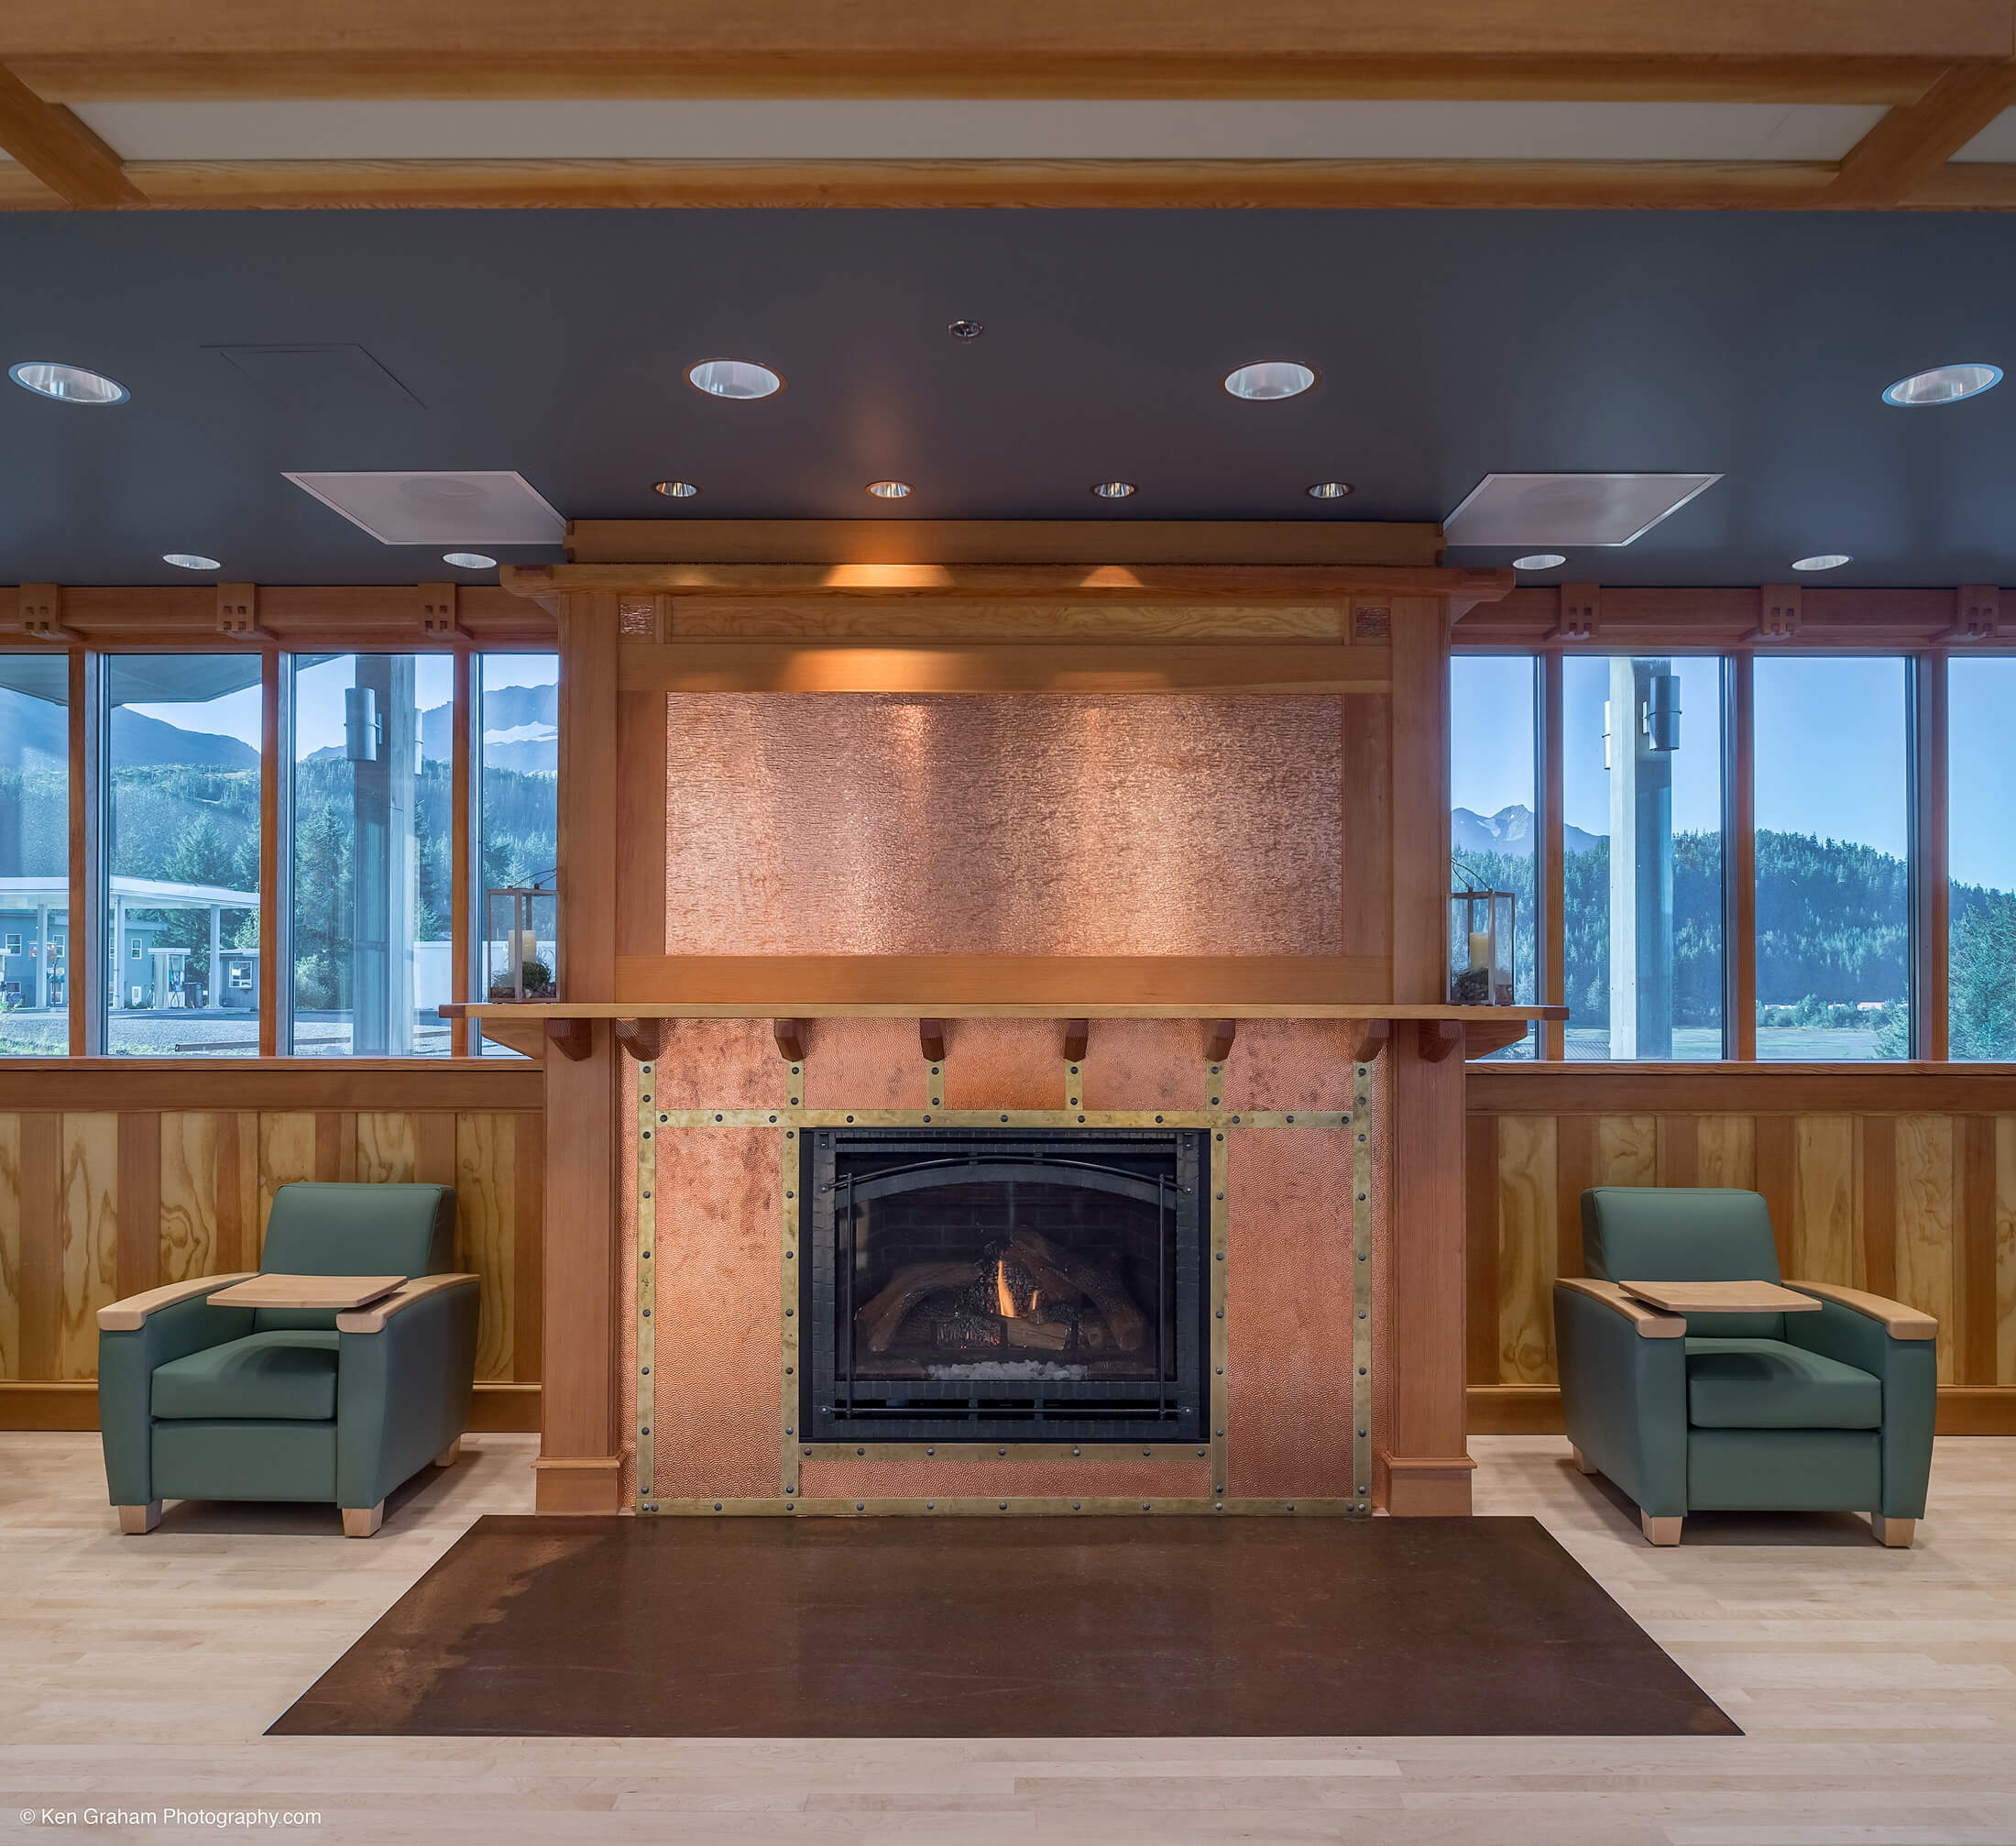 Cordova Center Phase II Fireplace